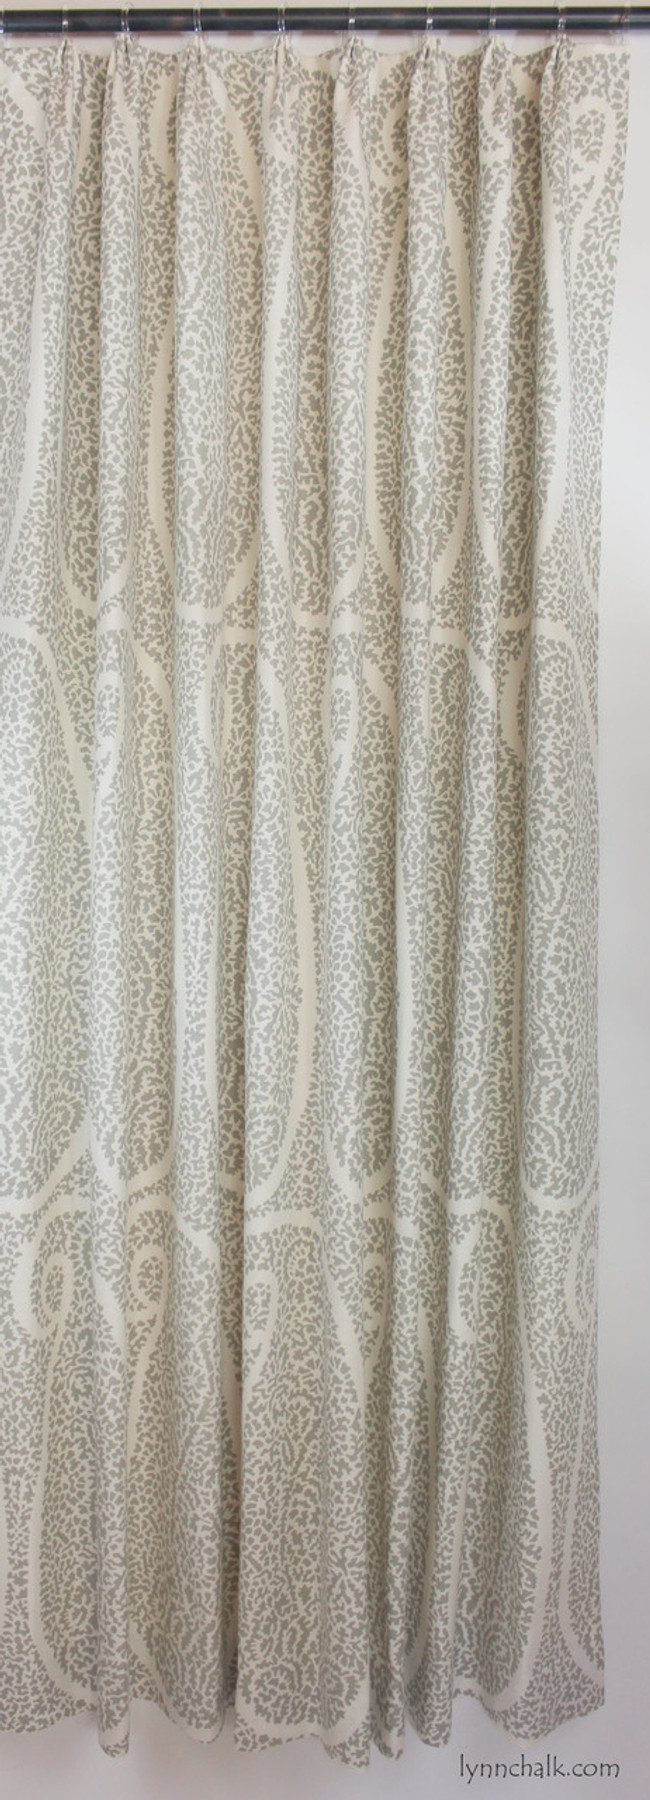 Custom Fan Pleated drapes in Schumacher Ambala Paisley Fog